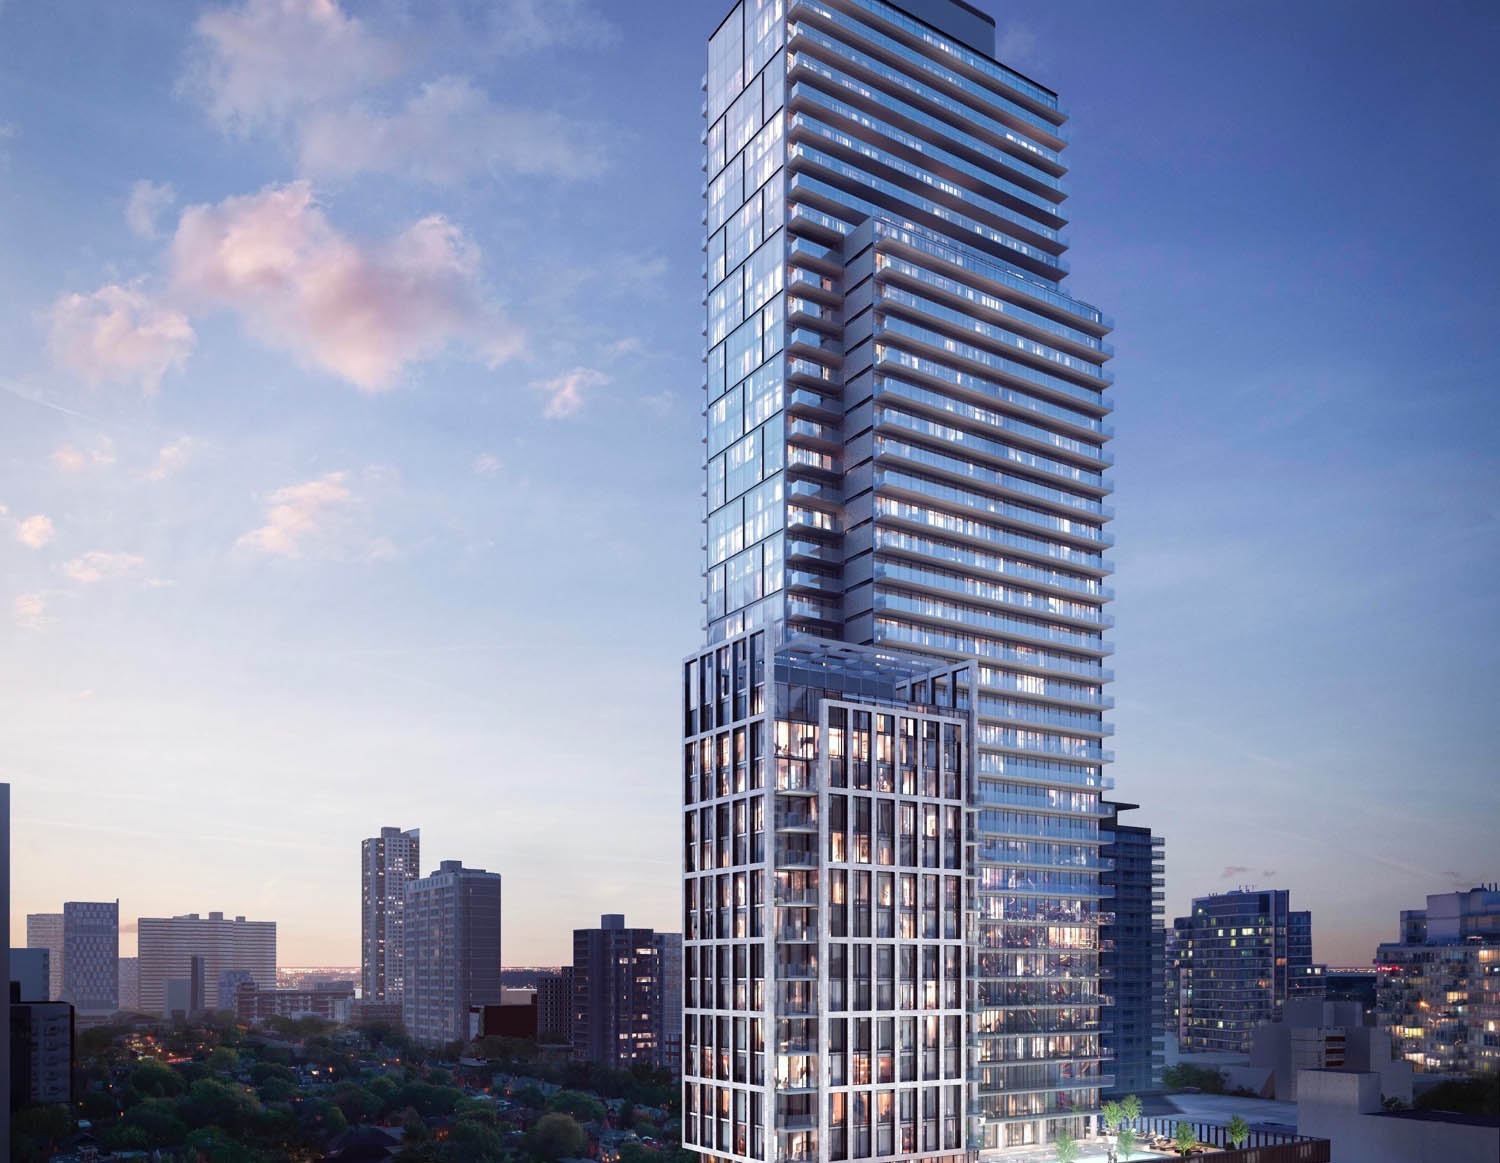 The Halo Residences - Yonge & Carlton • Cresford DevelopmentsThe ultimate luxury is found in classic design. Halo stands proudly on Yonge Street, sophisticated and refined holds 423 units. Estimated completion date set for 2020.